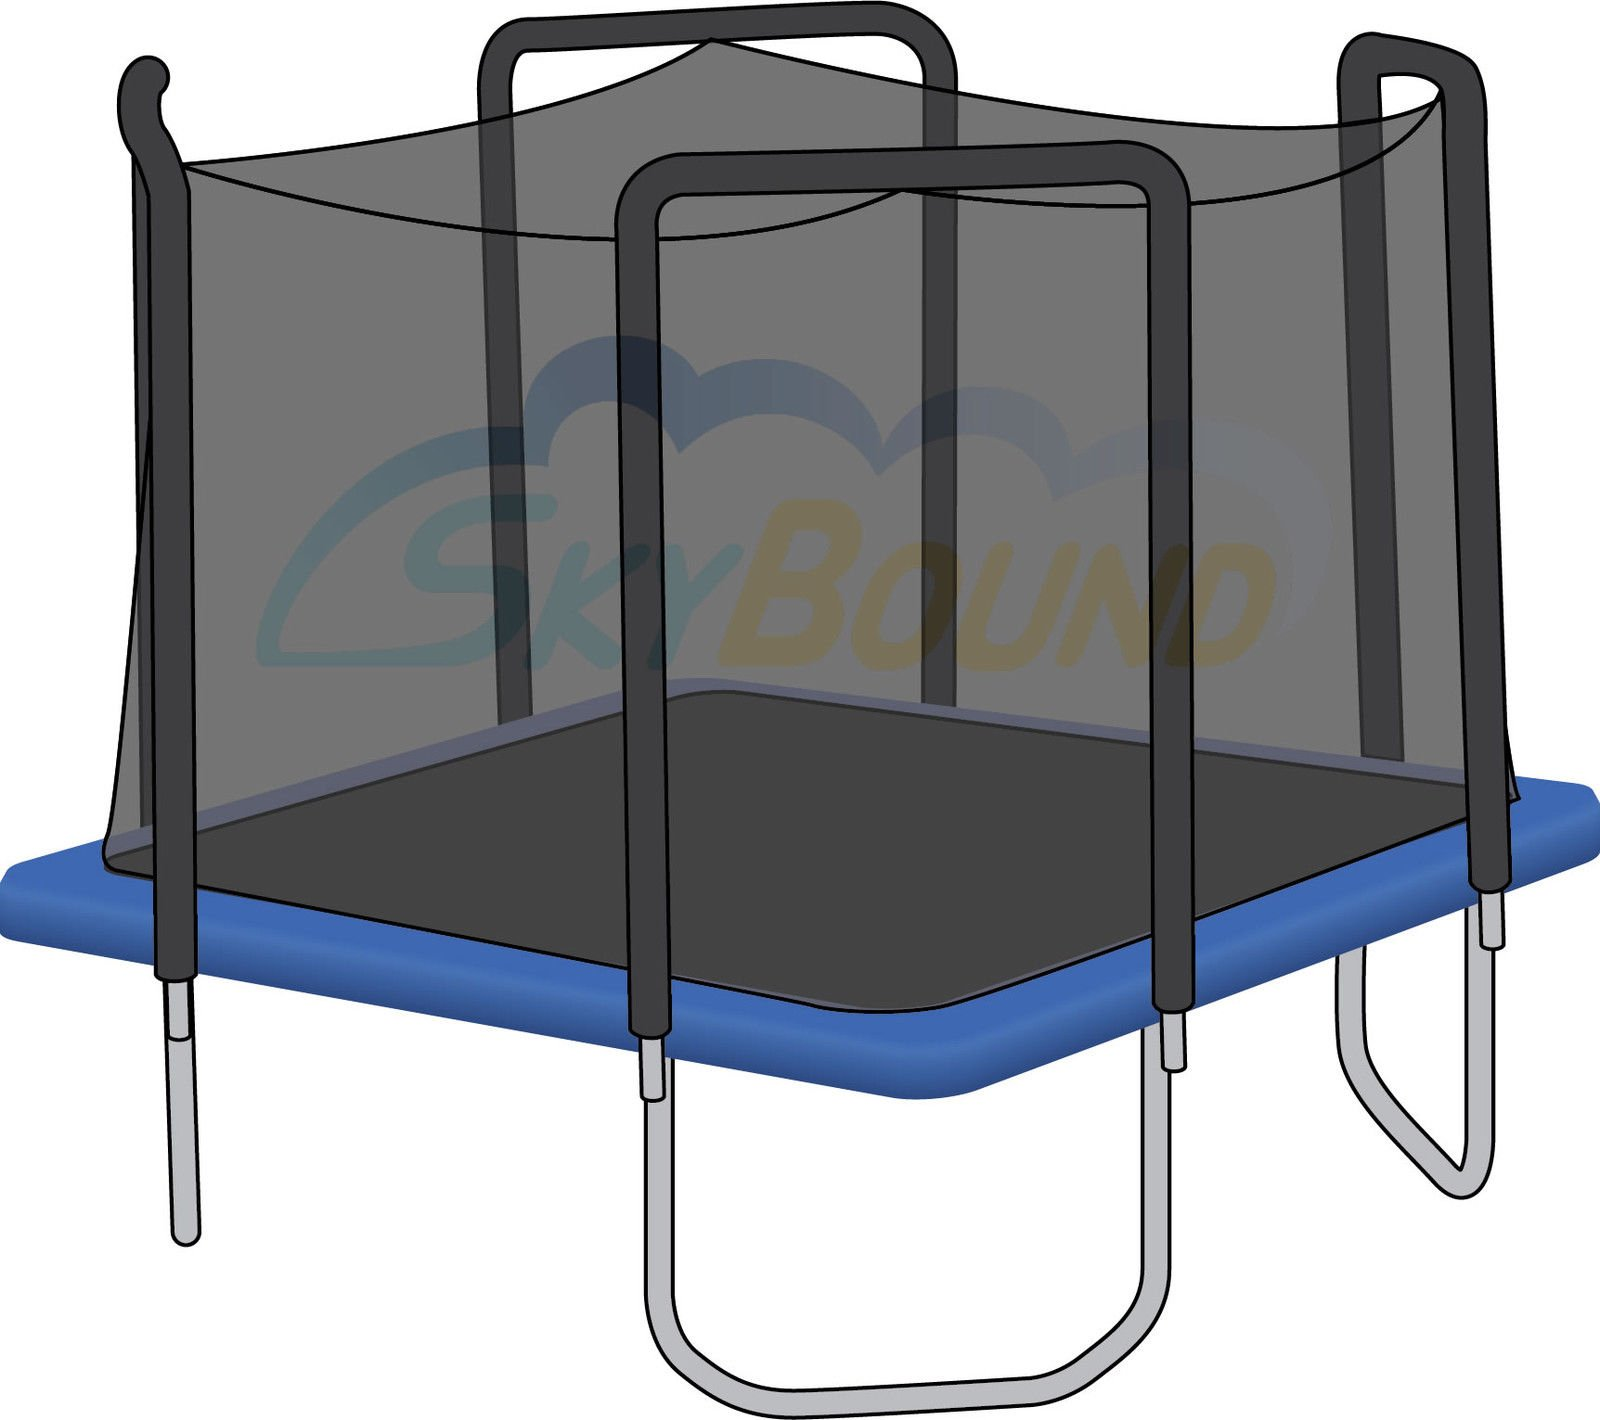 Skybound Trampoline Net for 13ft x 13ft Square Trampoline (Compatible with Skywalker Trampoline with 4 Arches) by Skybound